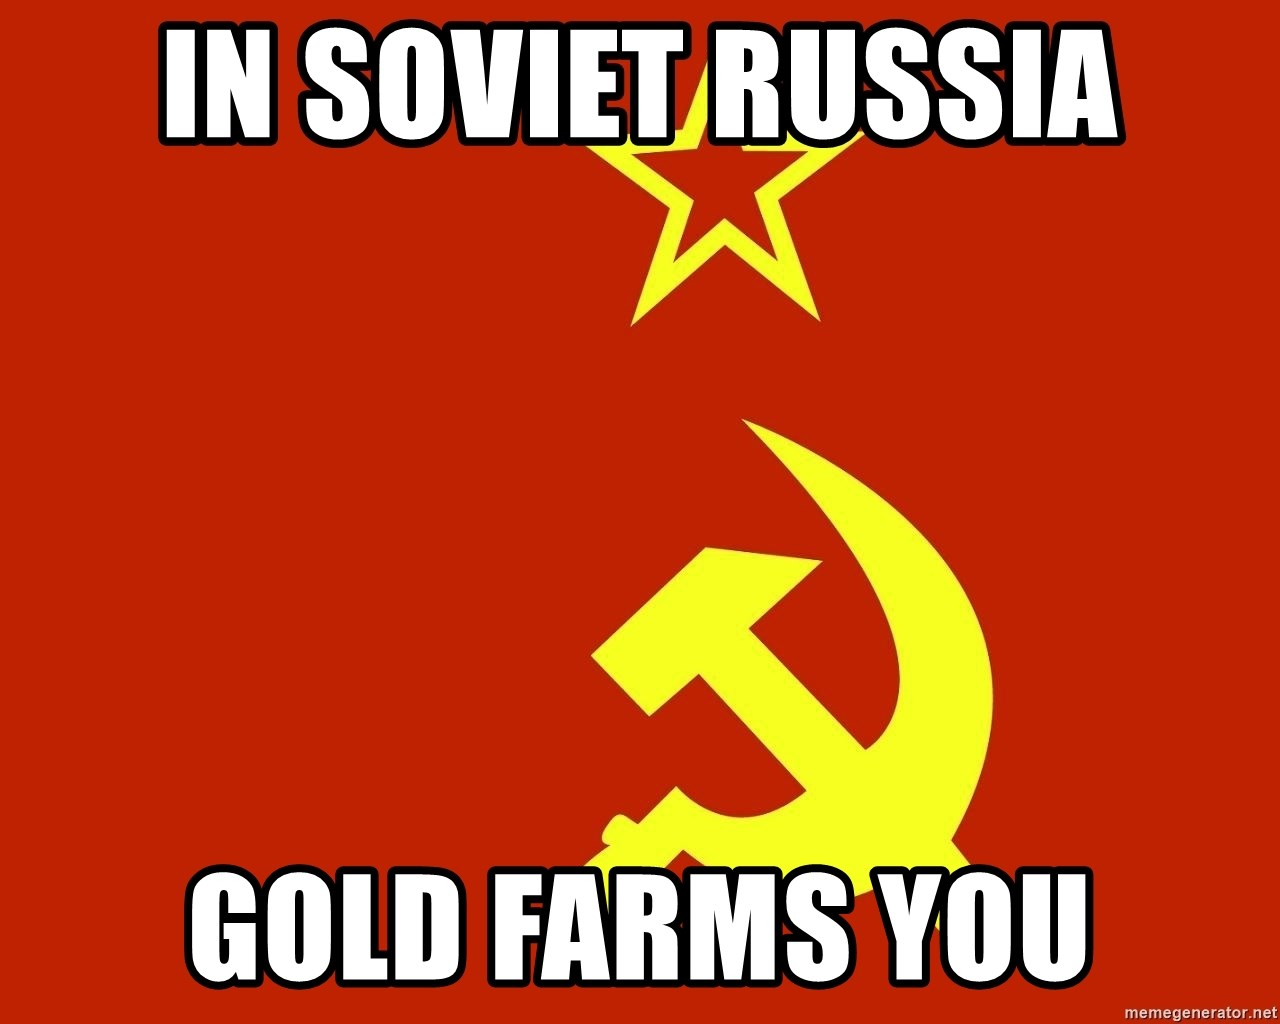 In Soviet Russia - IN SOVIET RUSSIA GOLD FARMS YOU